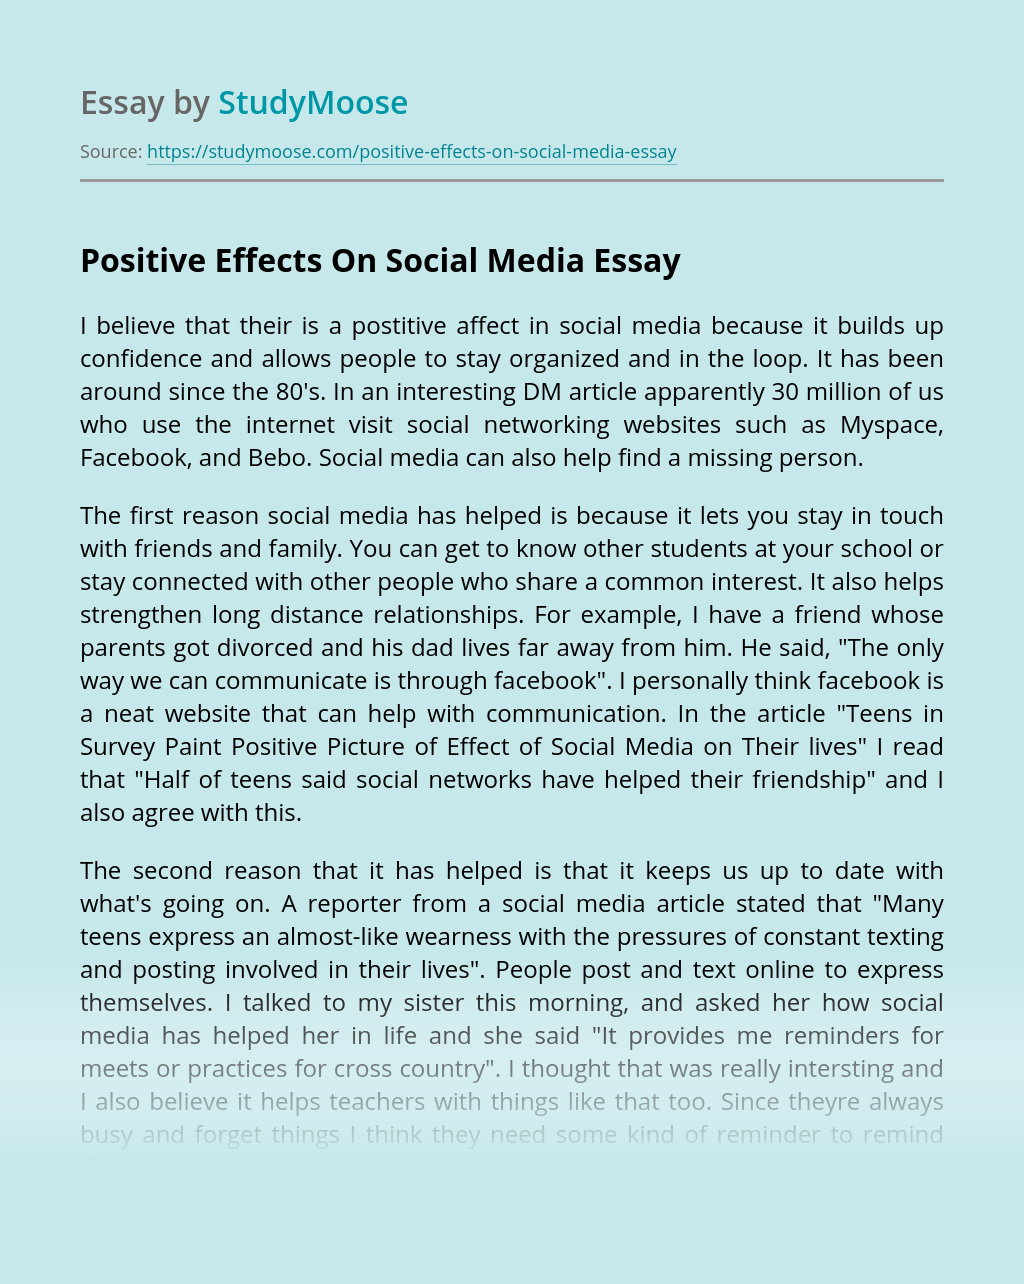 Positive Effects On Social Media